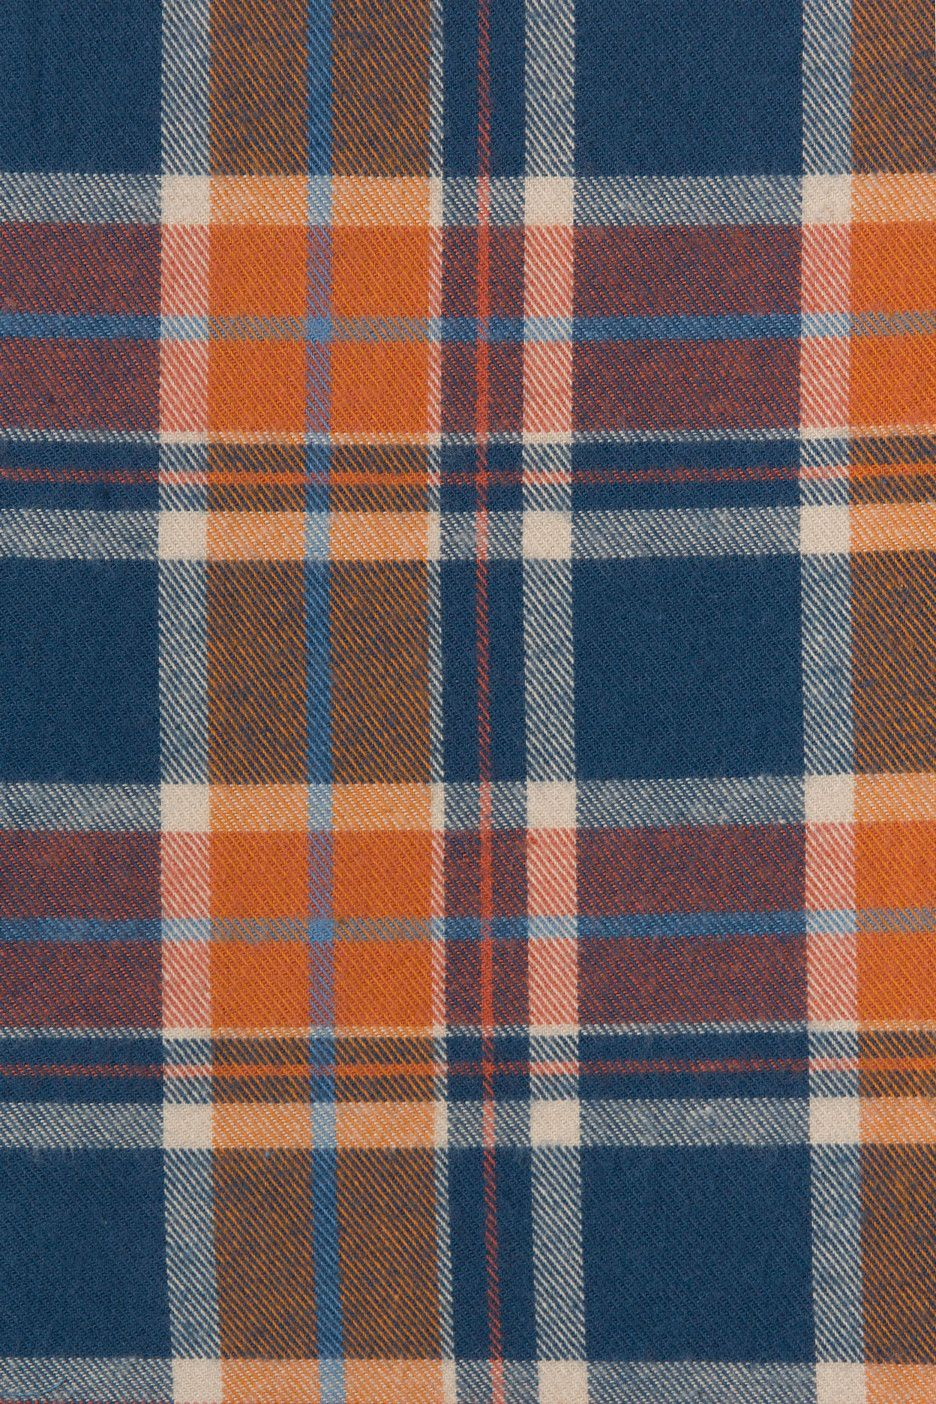 Rodeo Cotton Flannel Orange Plaid Fabric #fallwallpaperiphone